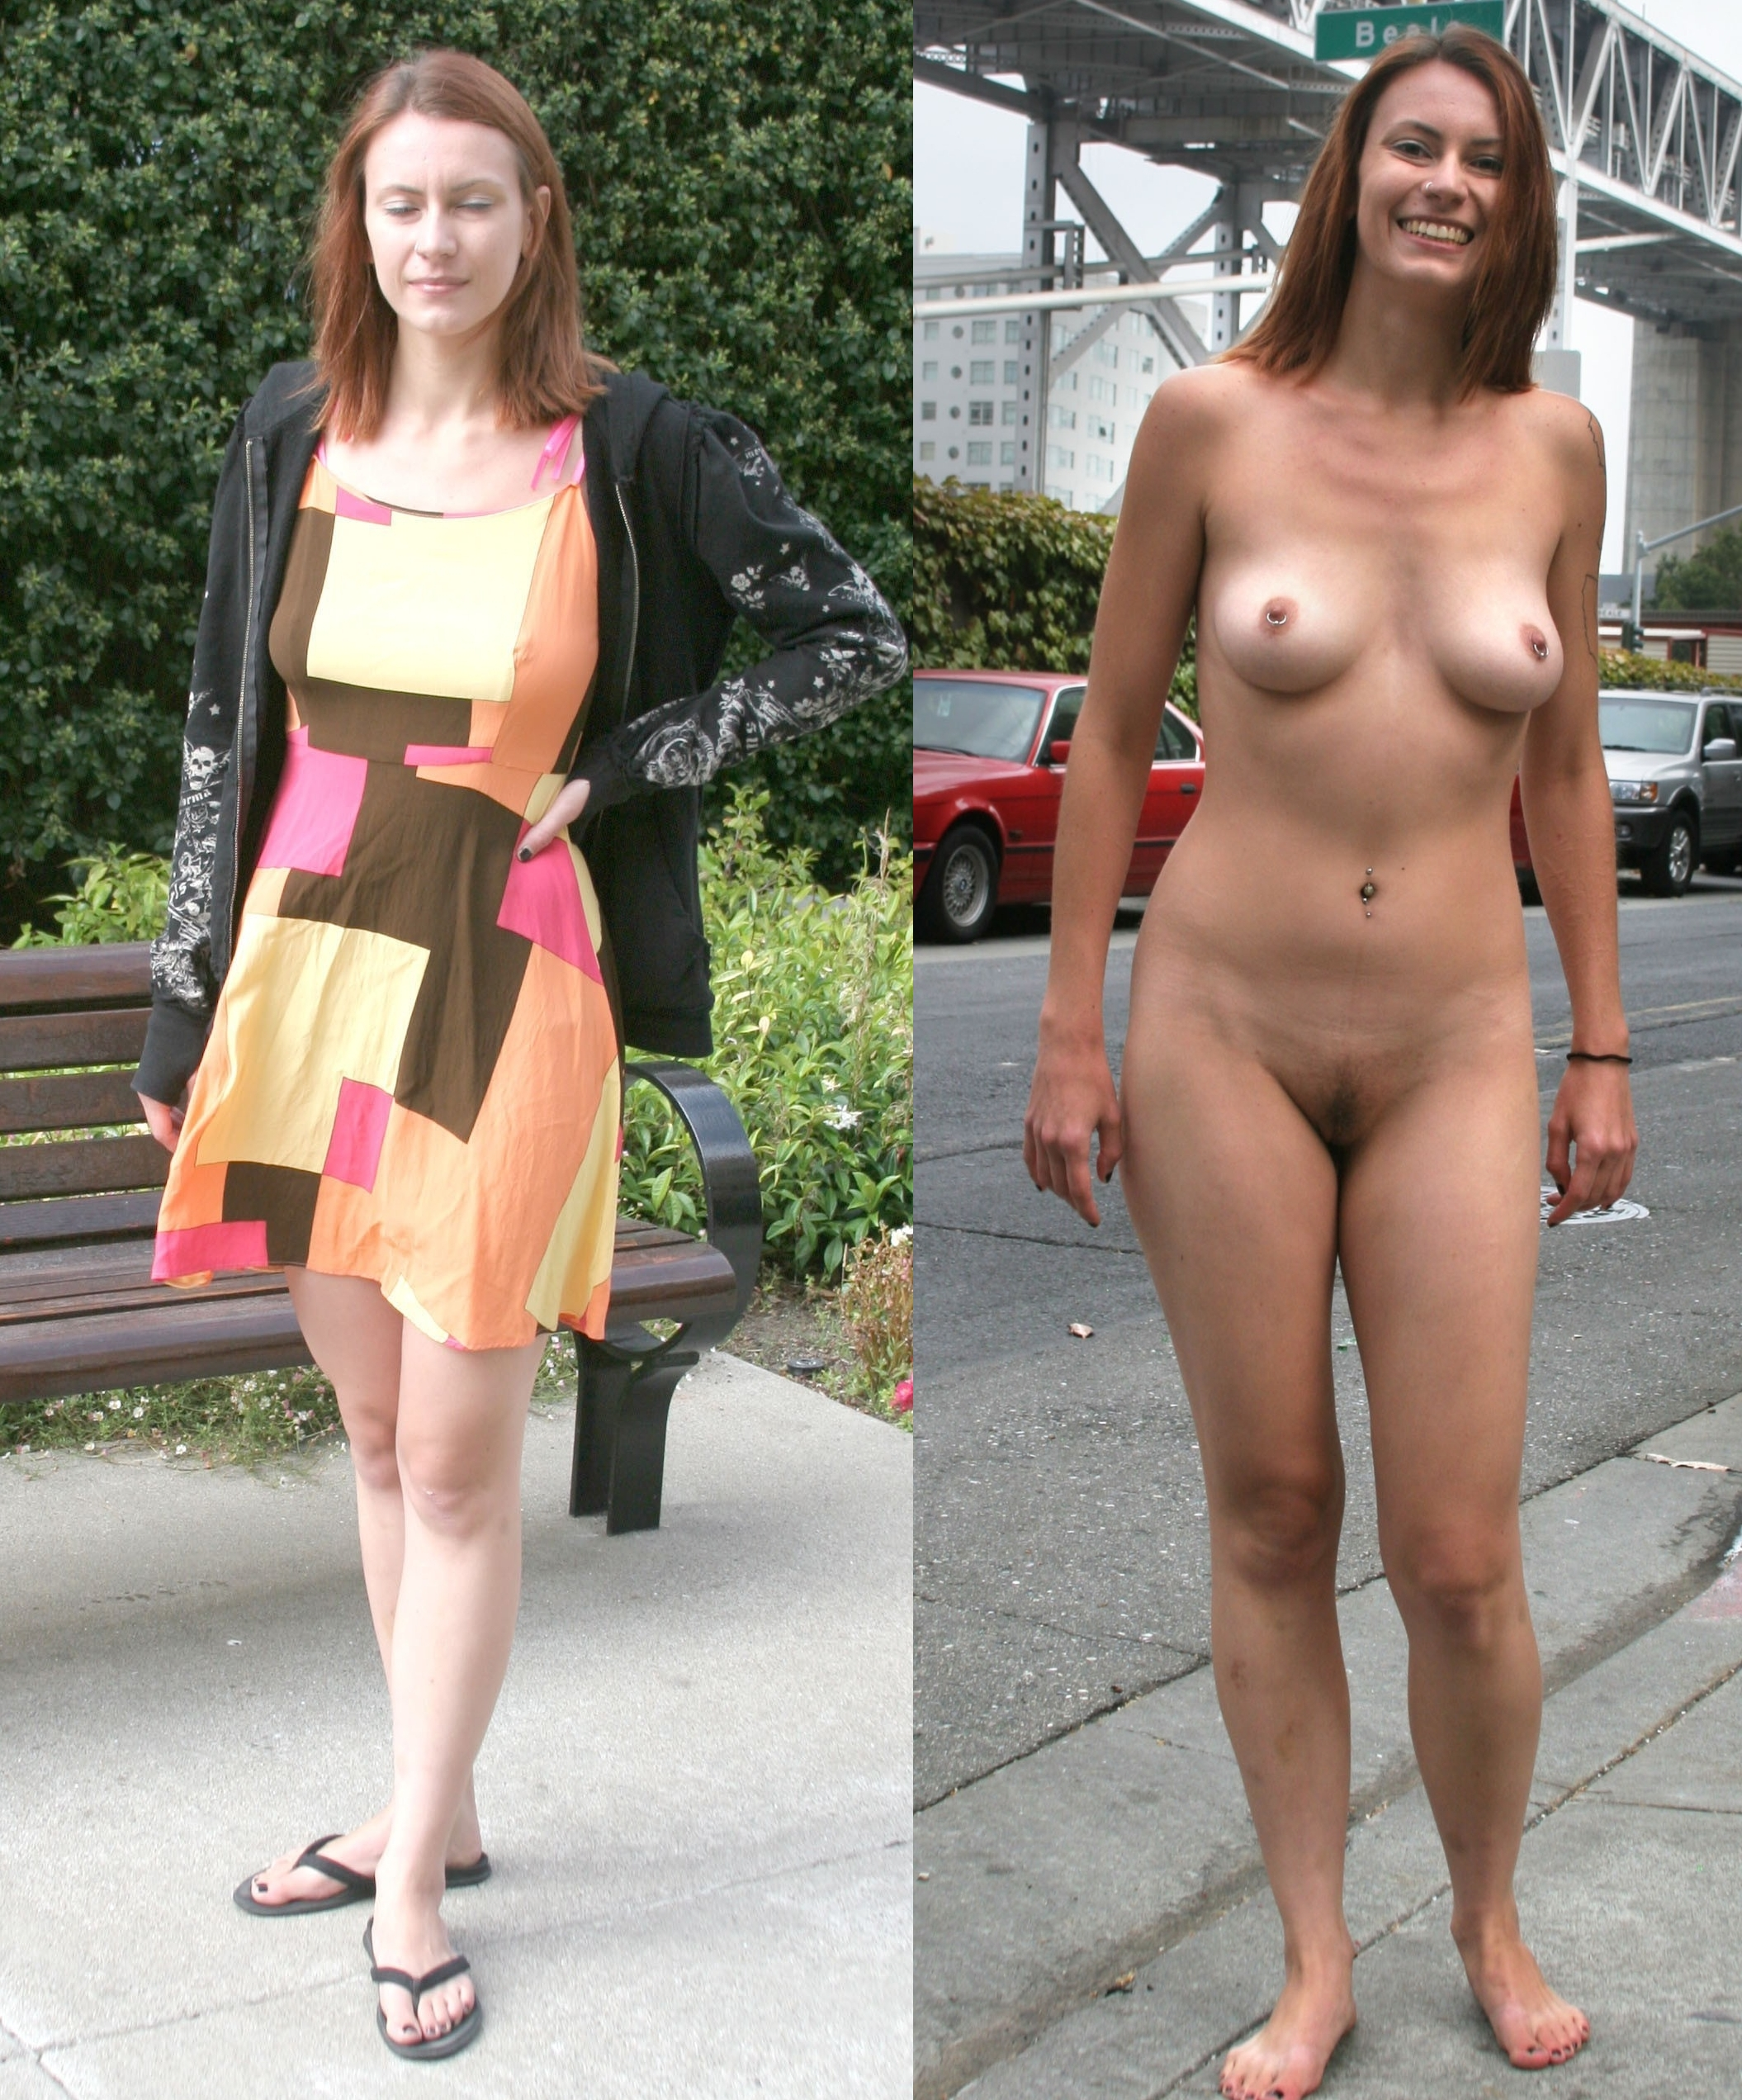 Pictures dressed and undressed Clothing Optional